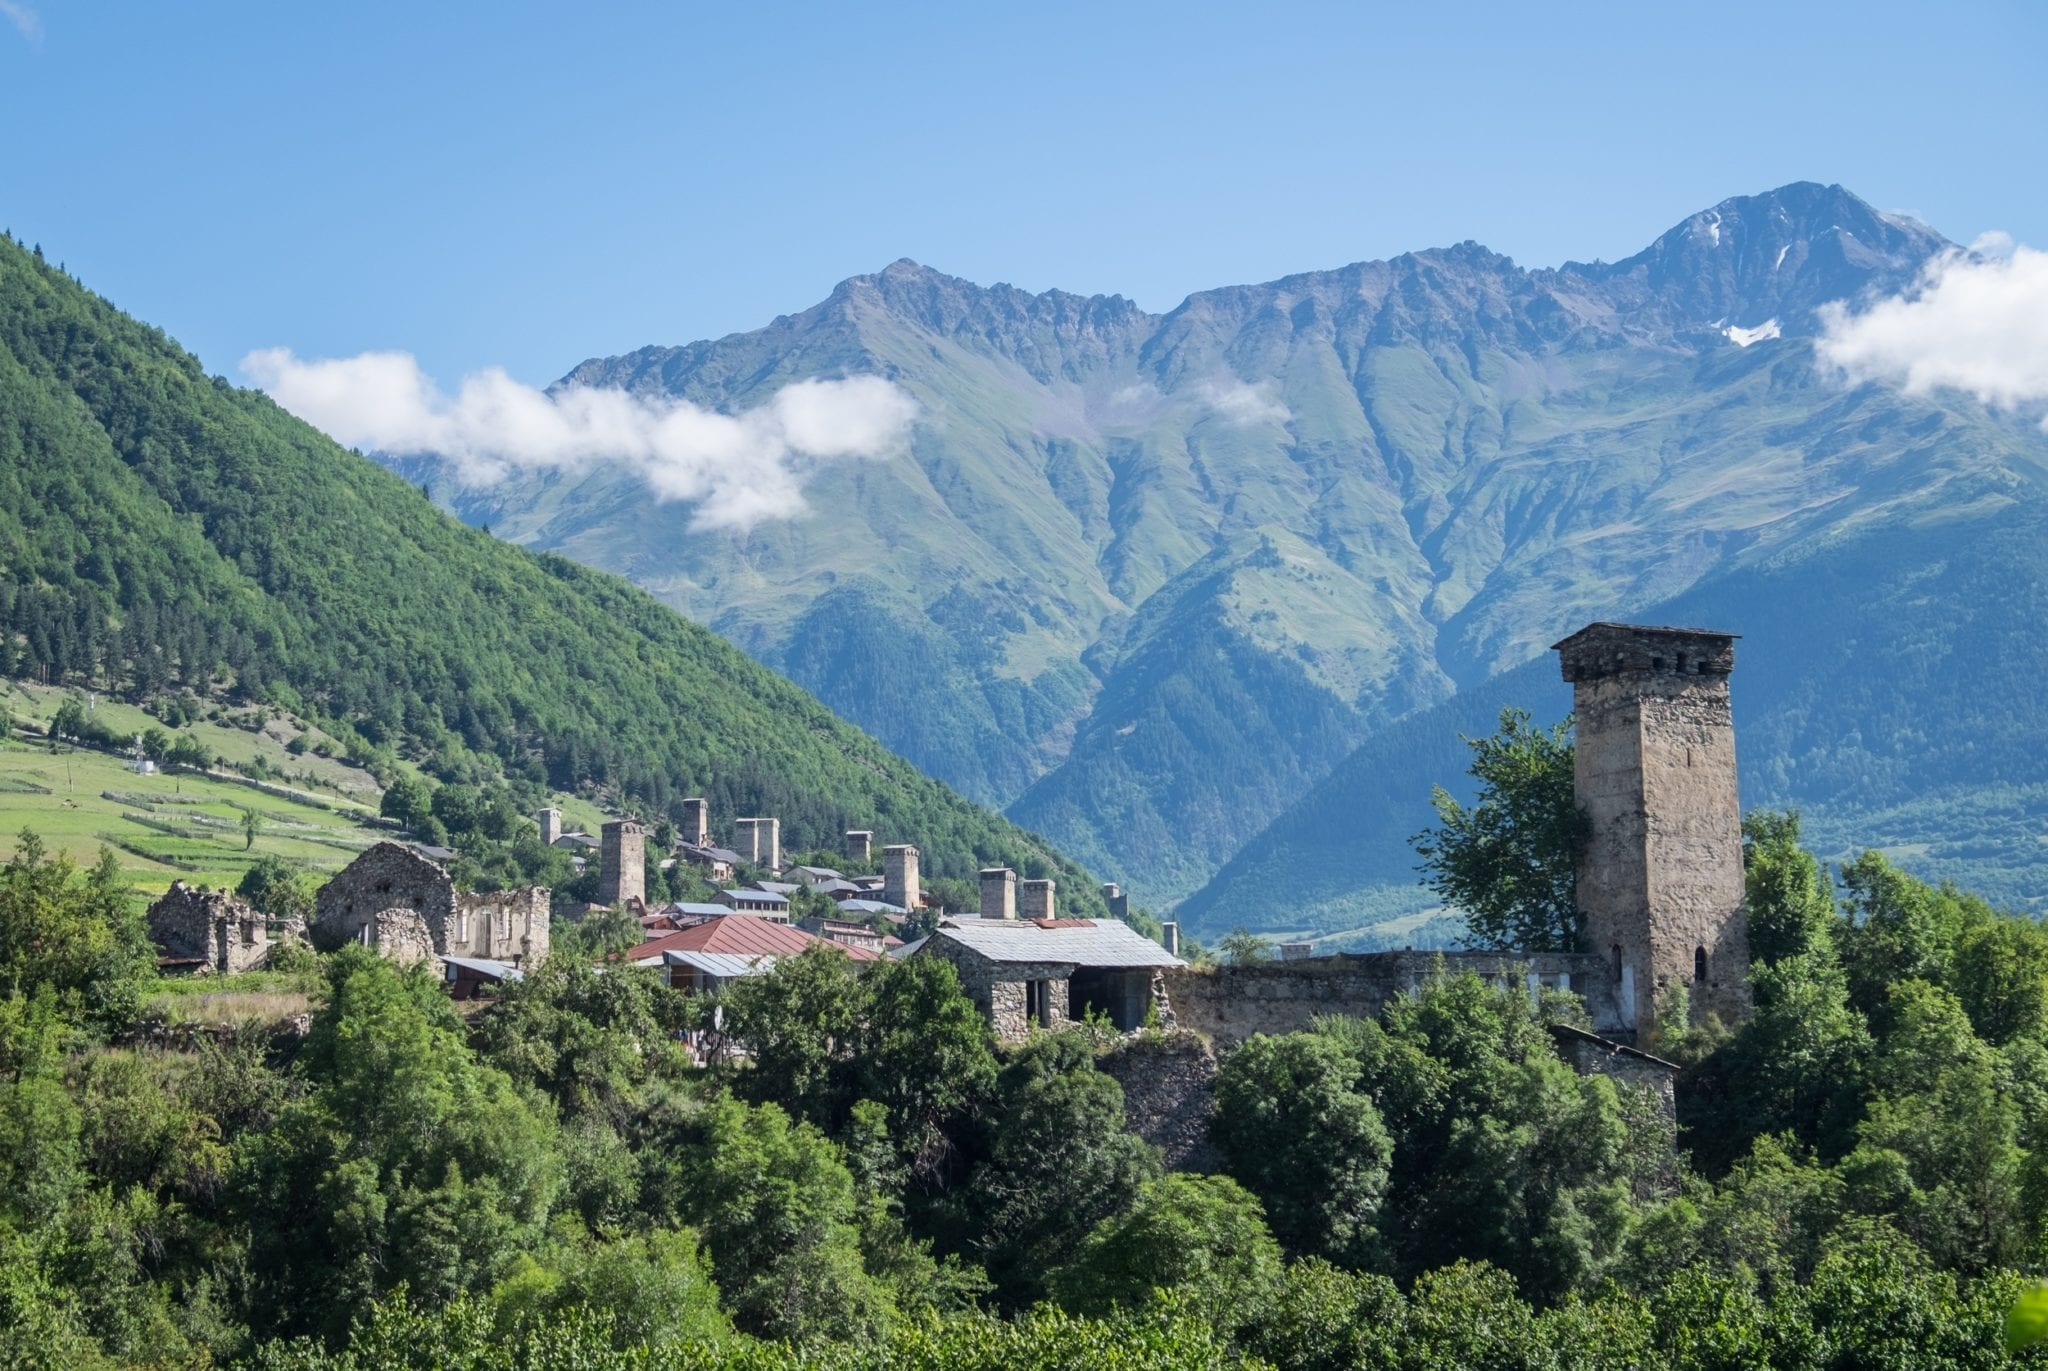 A view over Mestia: mountains in the background, clouds in the sky (lower than the mountains!) and a stone tower on the right and a village with more towers on the left.